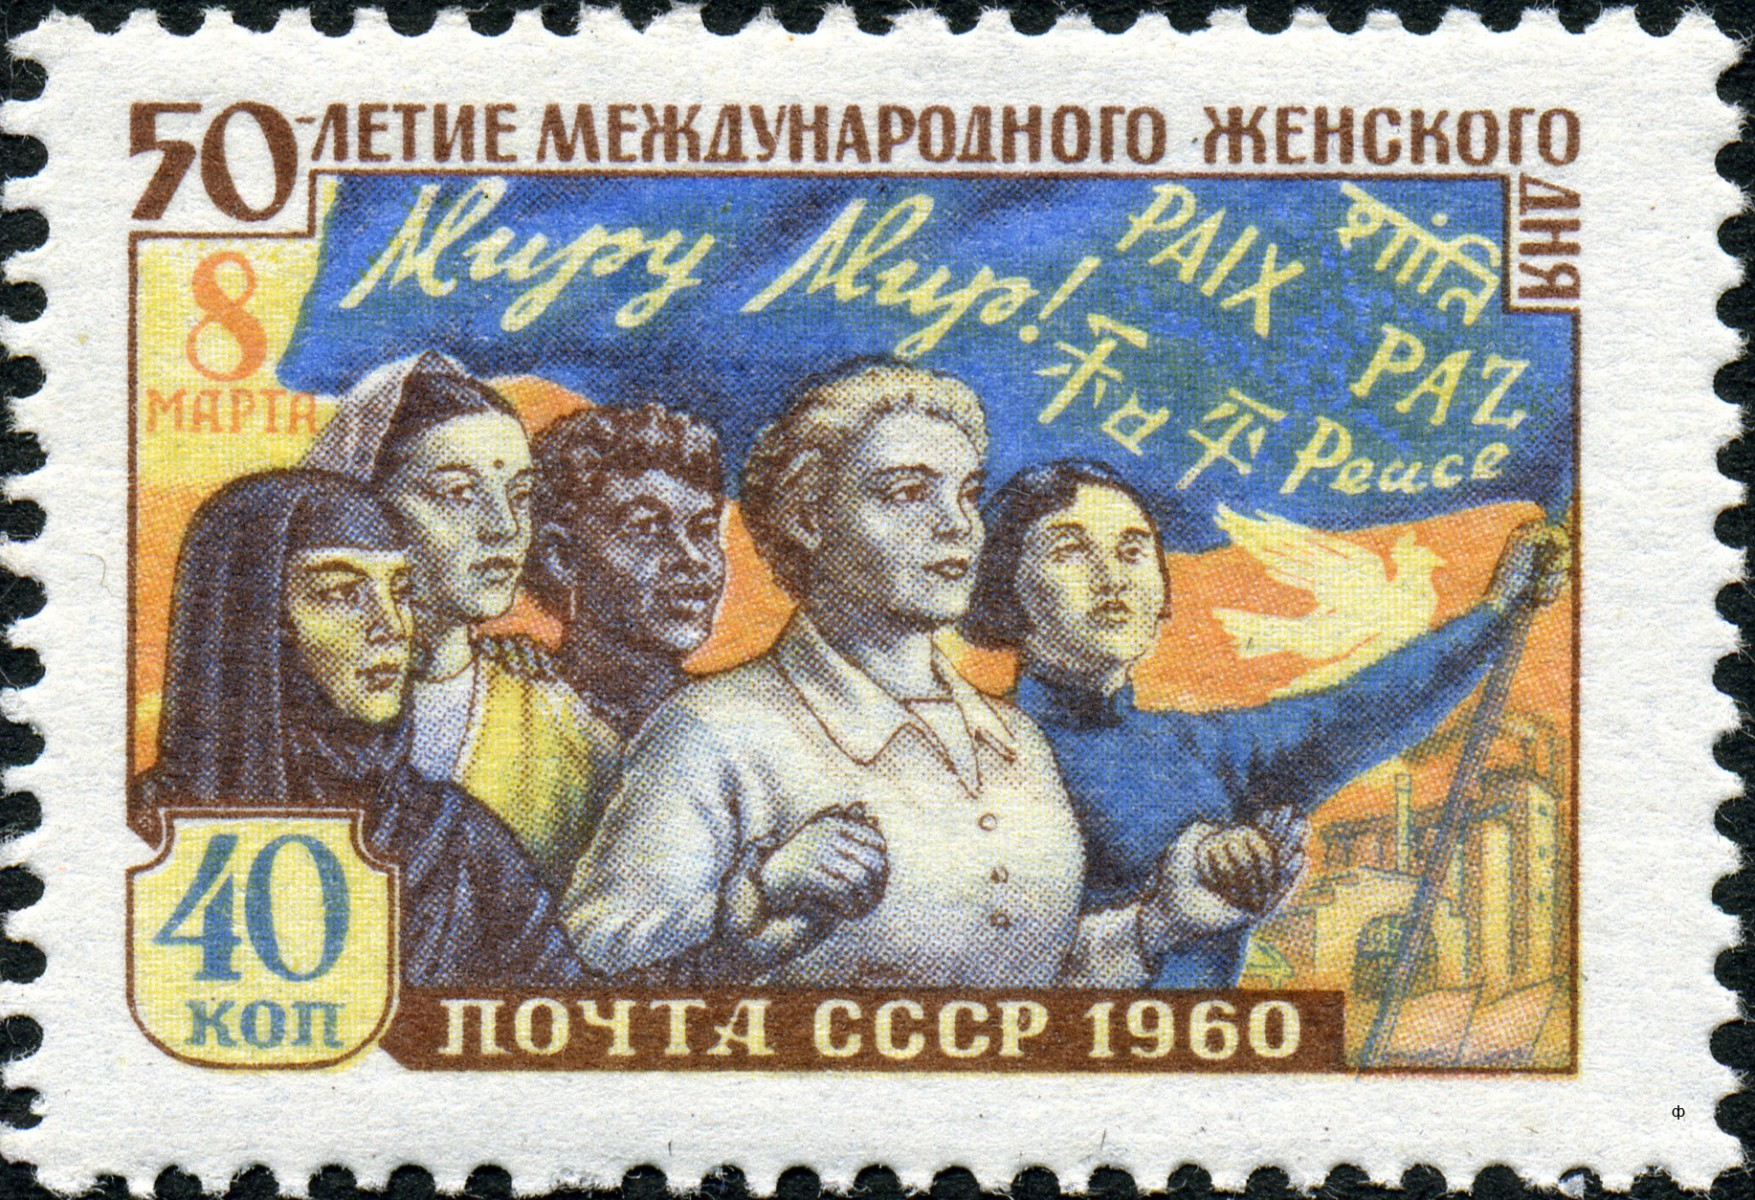 A Soviet postage stame celebrating the 50th anniversary of International Women's Day